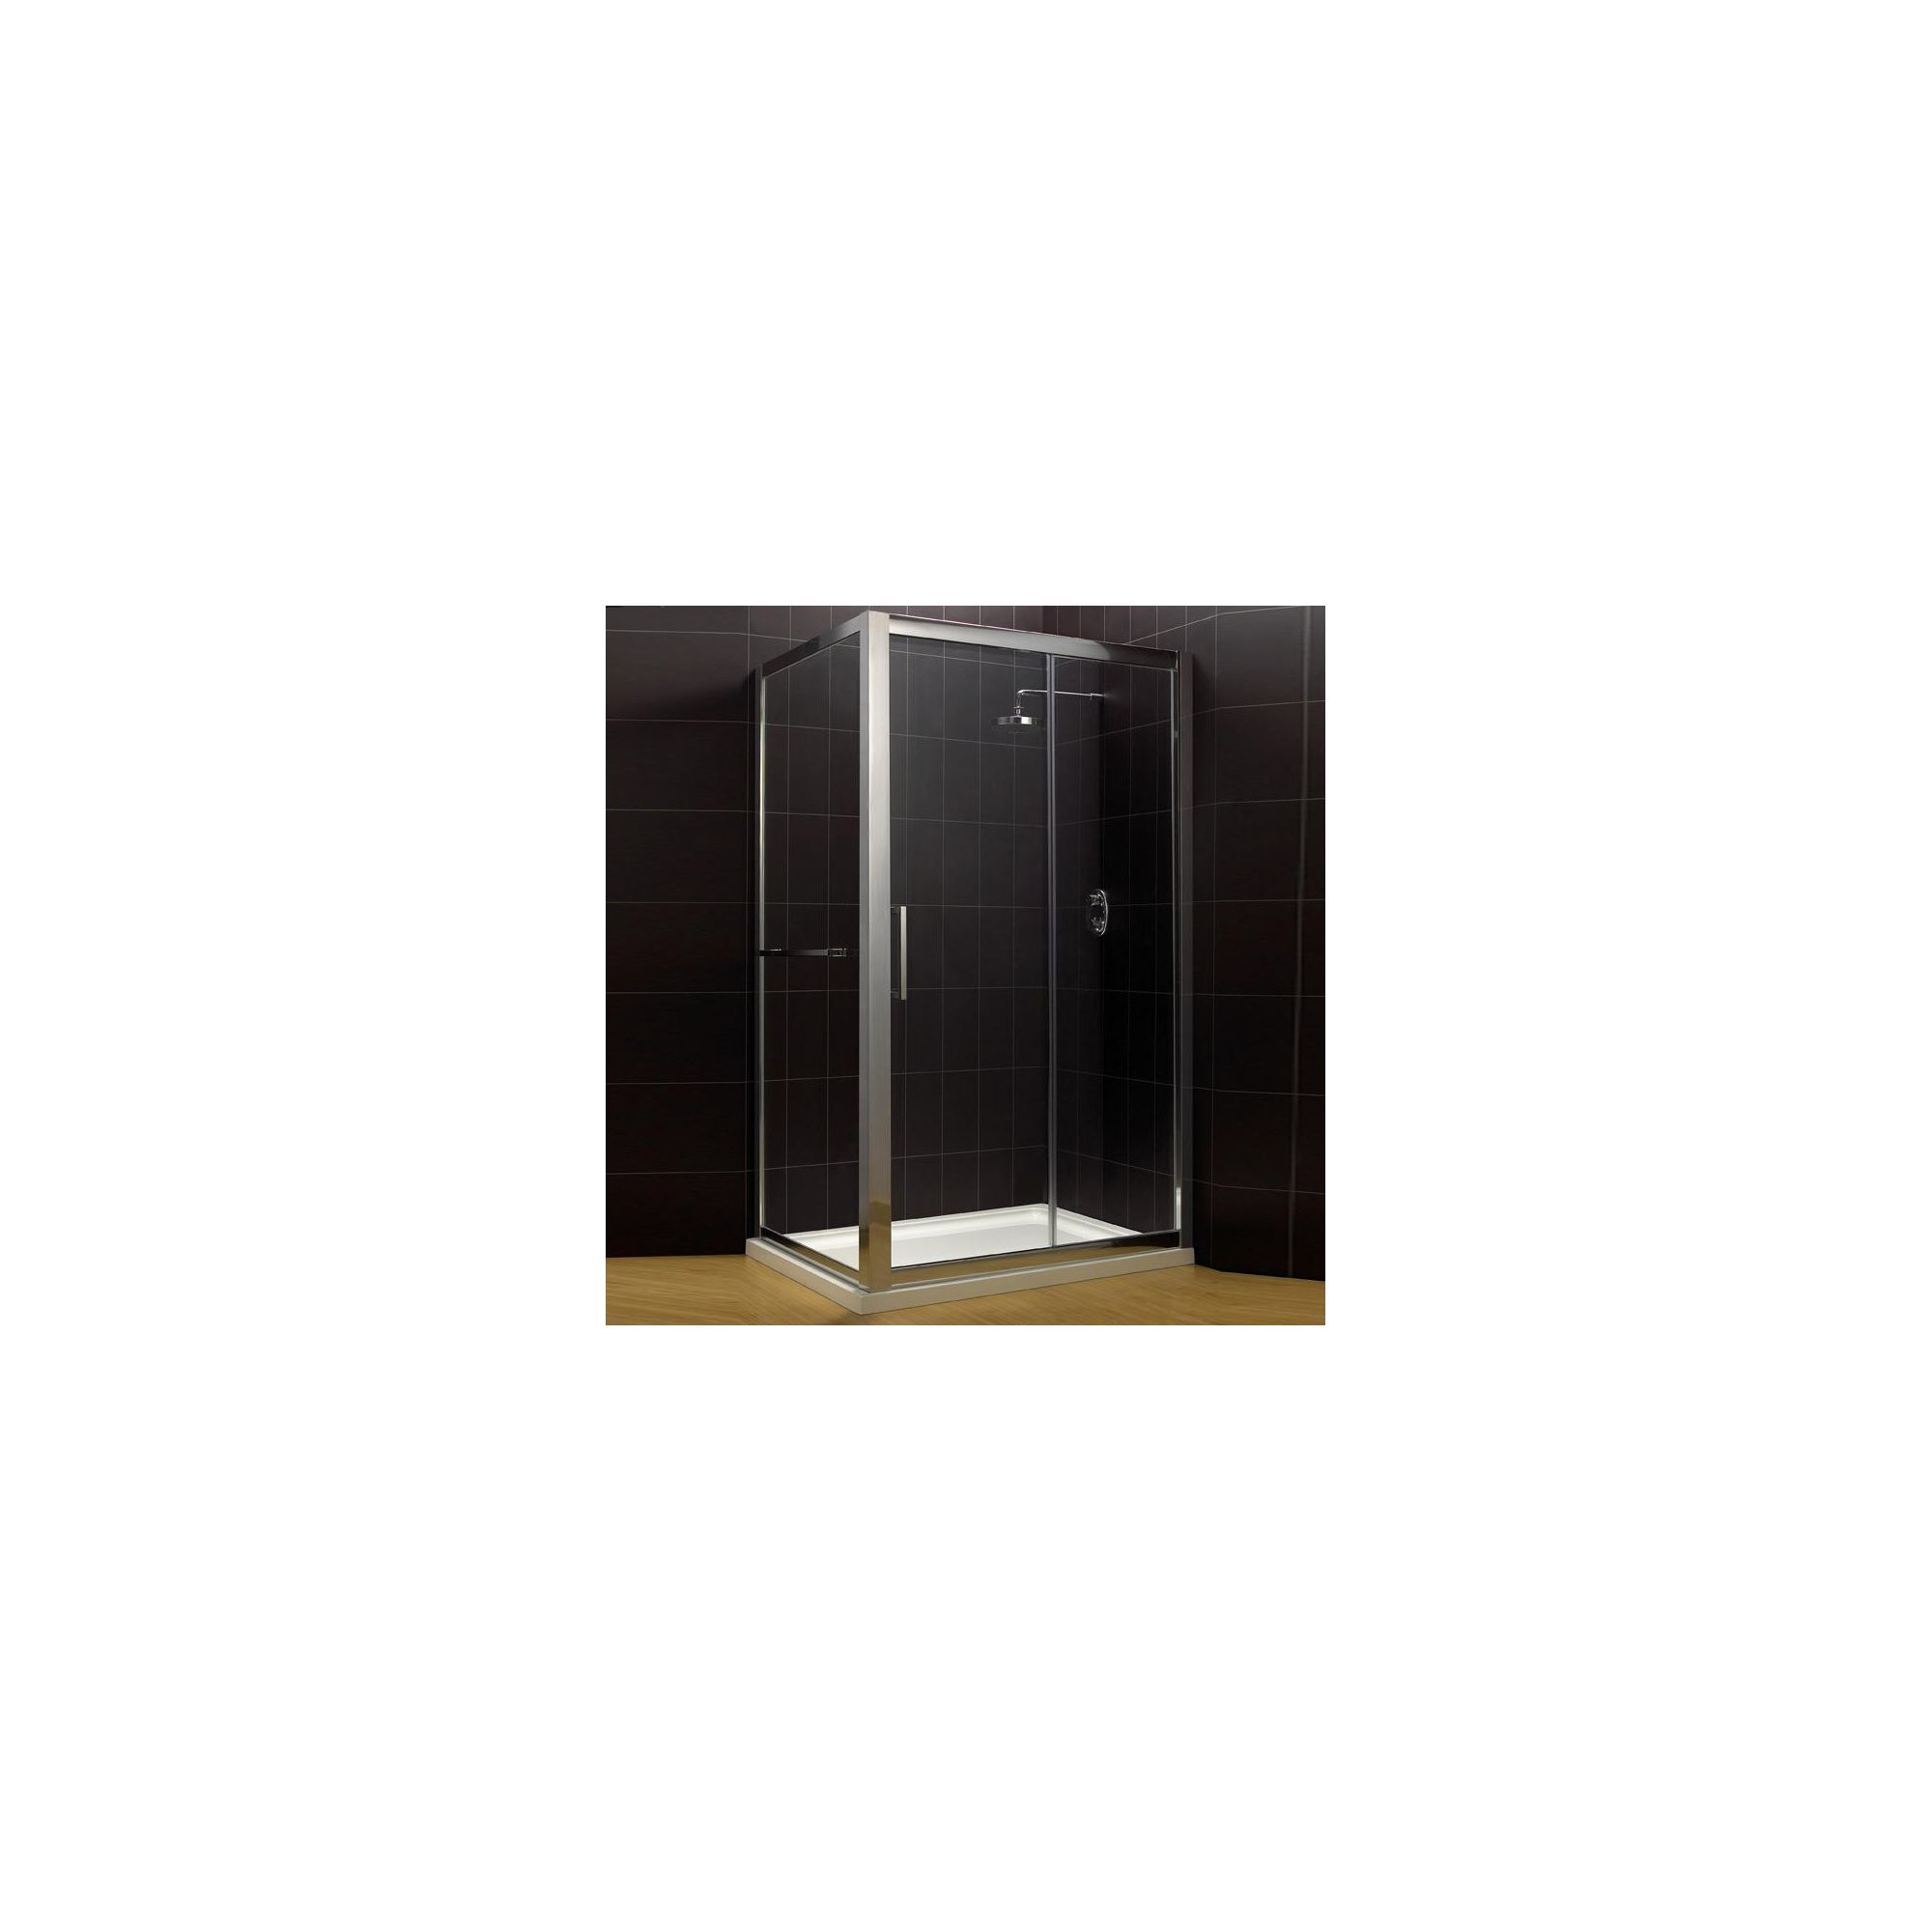 Duchy Supreme Silver Sliding Door Shower Enclosure with Towel Rail, 1200mm x 760mm, Standard Tray, 8mm Glass at Tesco Direct